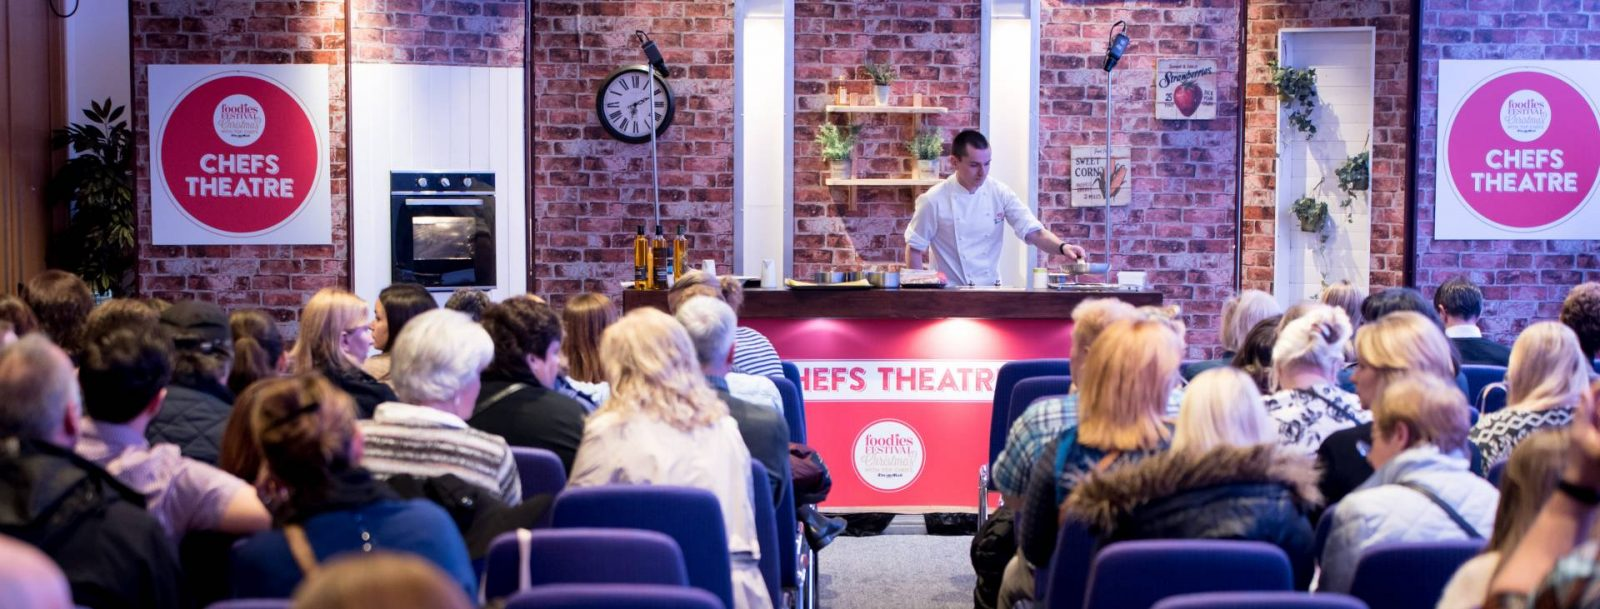 GIVEAWAY: Edinburgh Christmas Foodies Festival Tickets